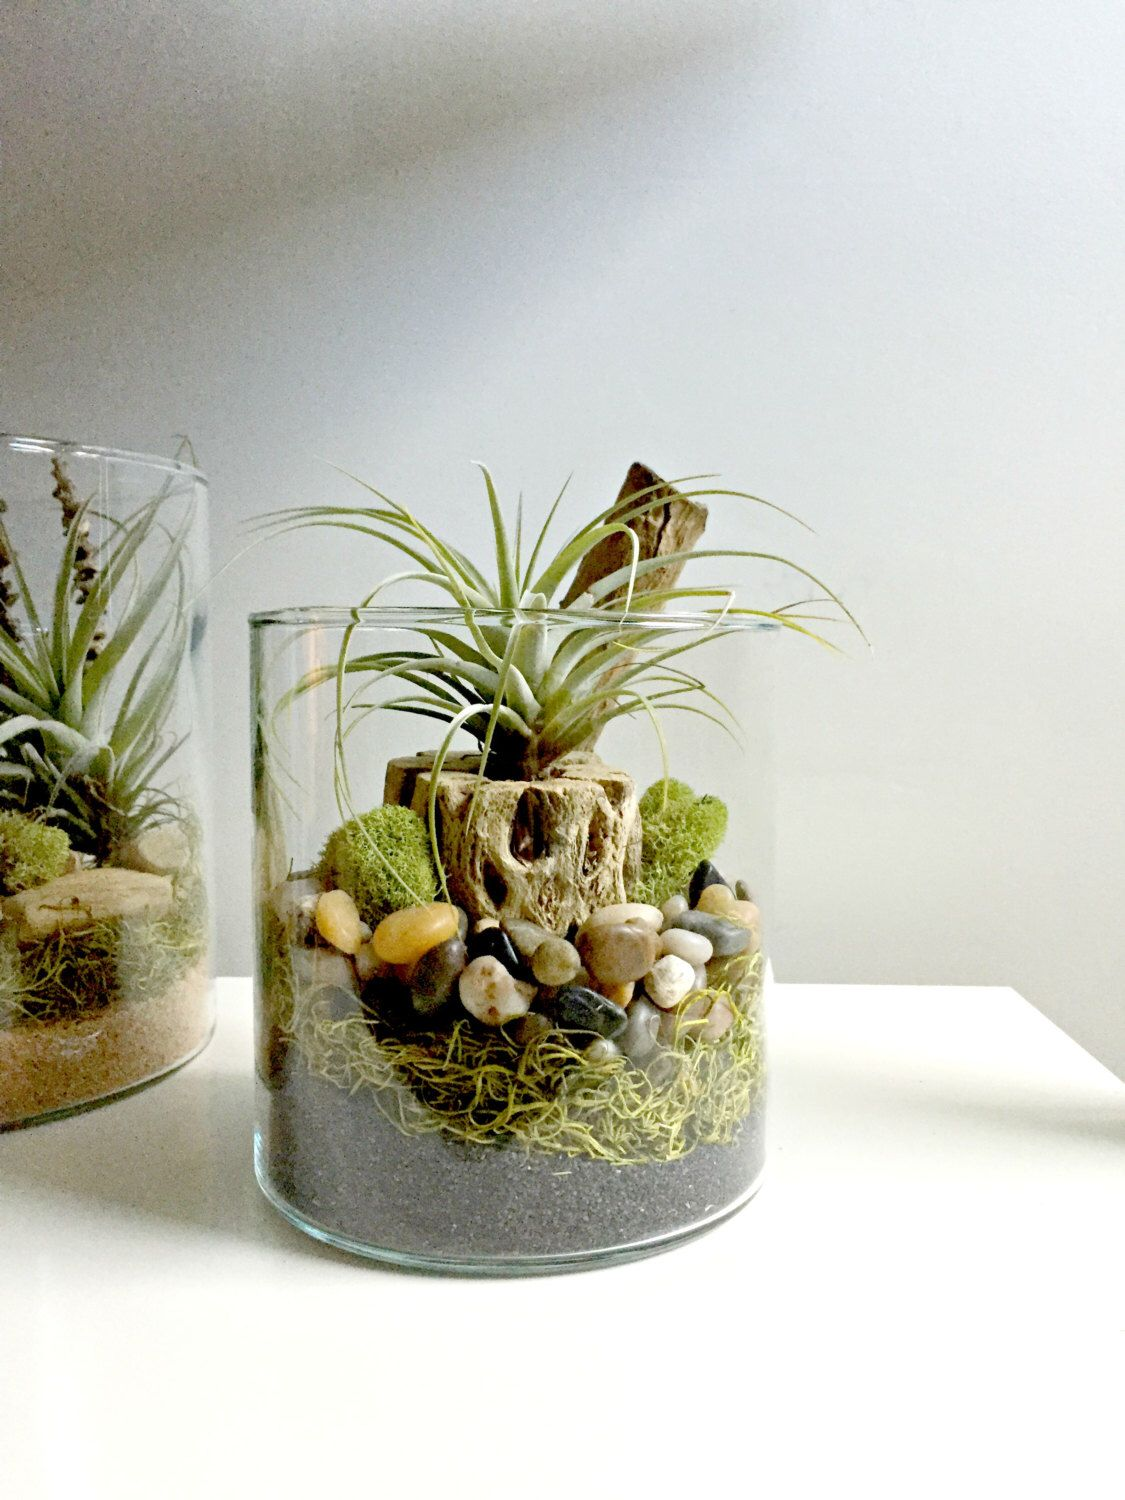 Air plant terrarium glass vase living decor diy kit gift for air plant terrarium glass vase living decor diy kit gift for any occasion reviewsmspy